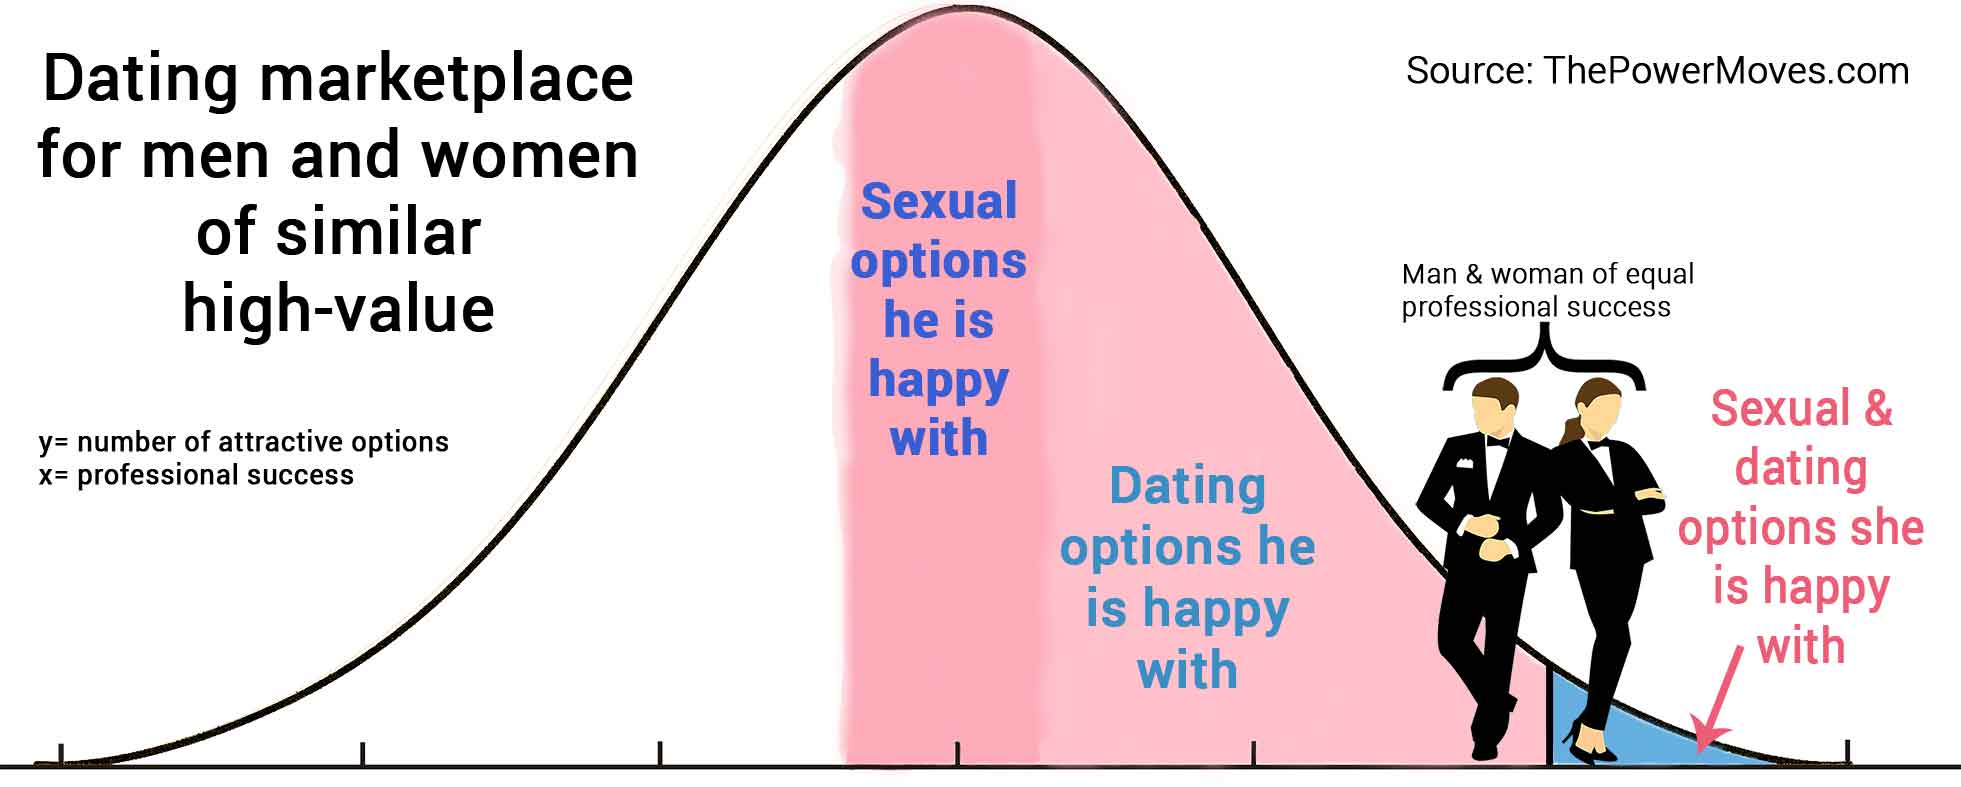 bell curve chart of successful women and men dating options